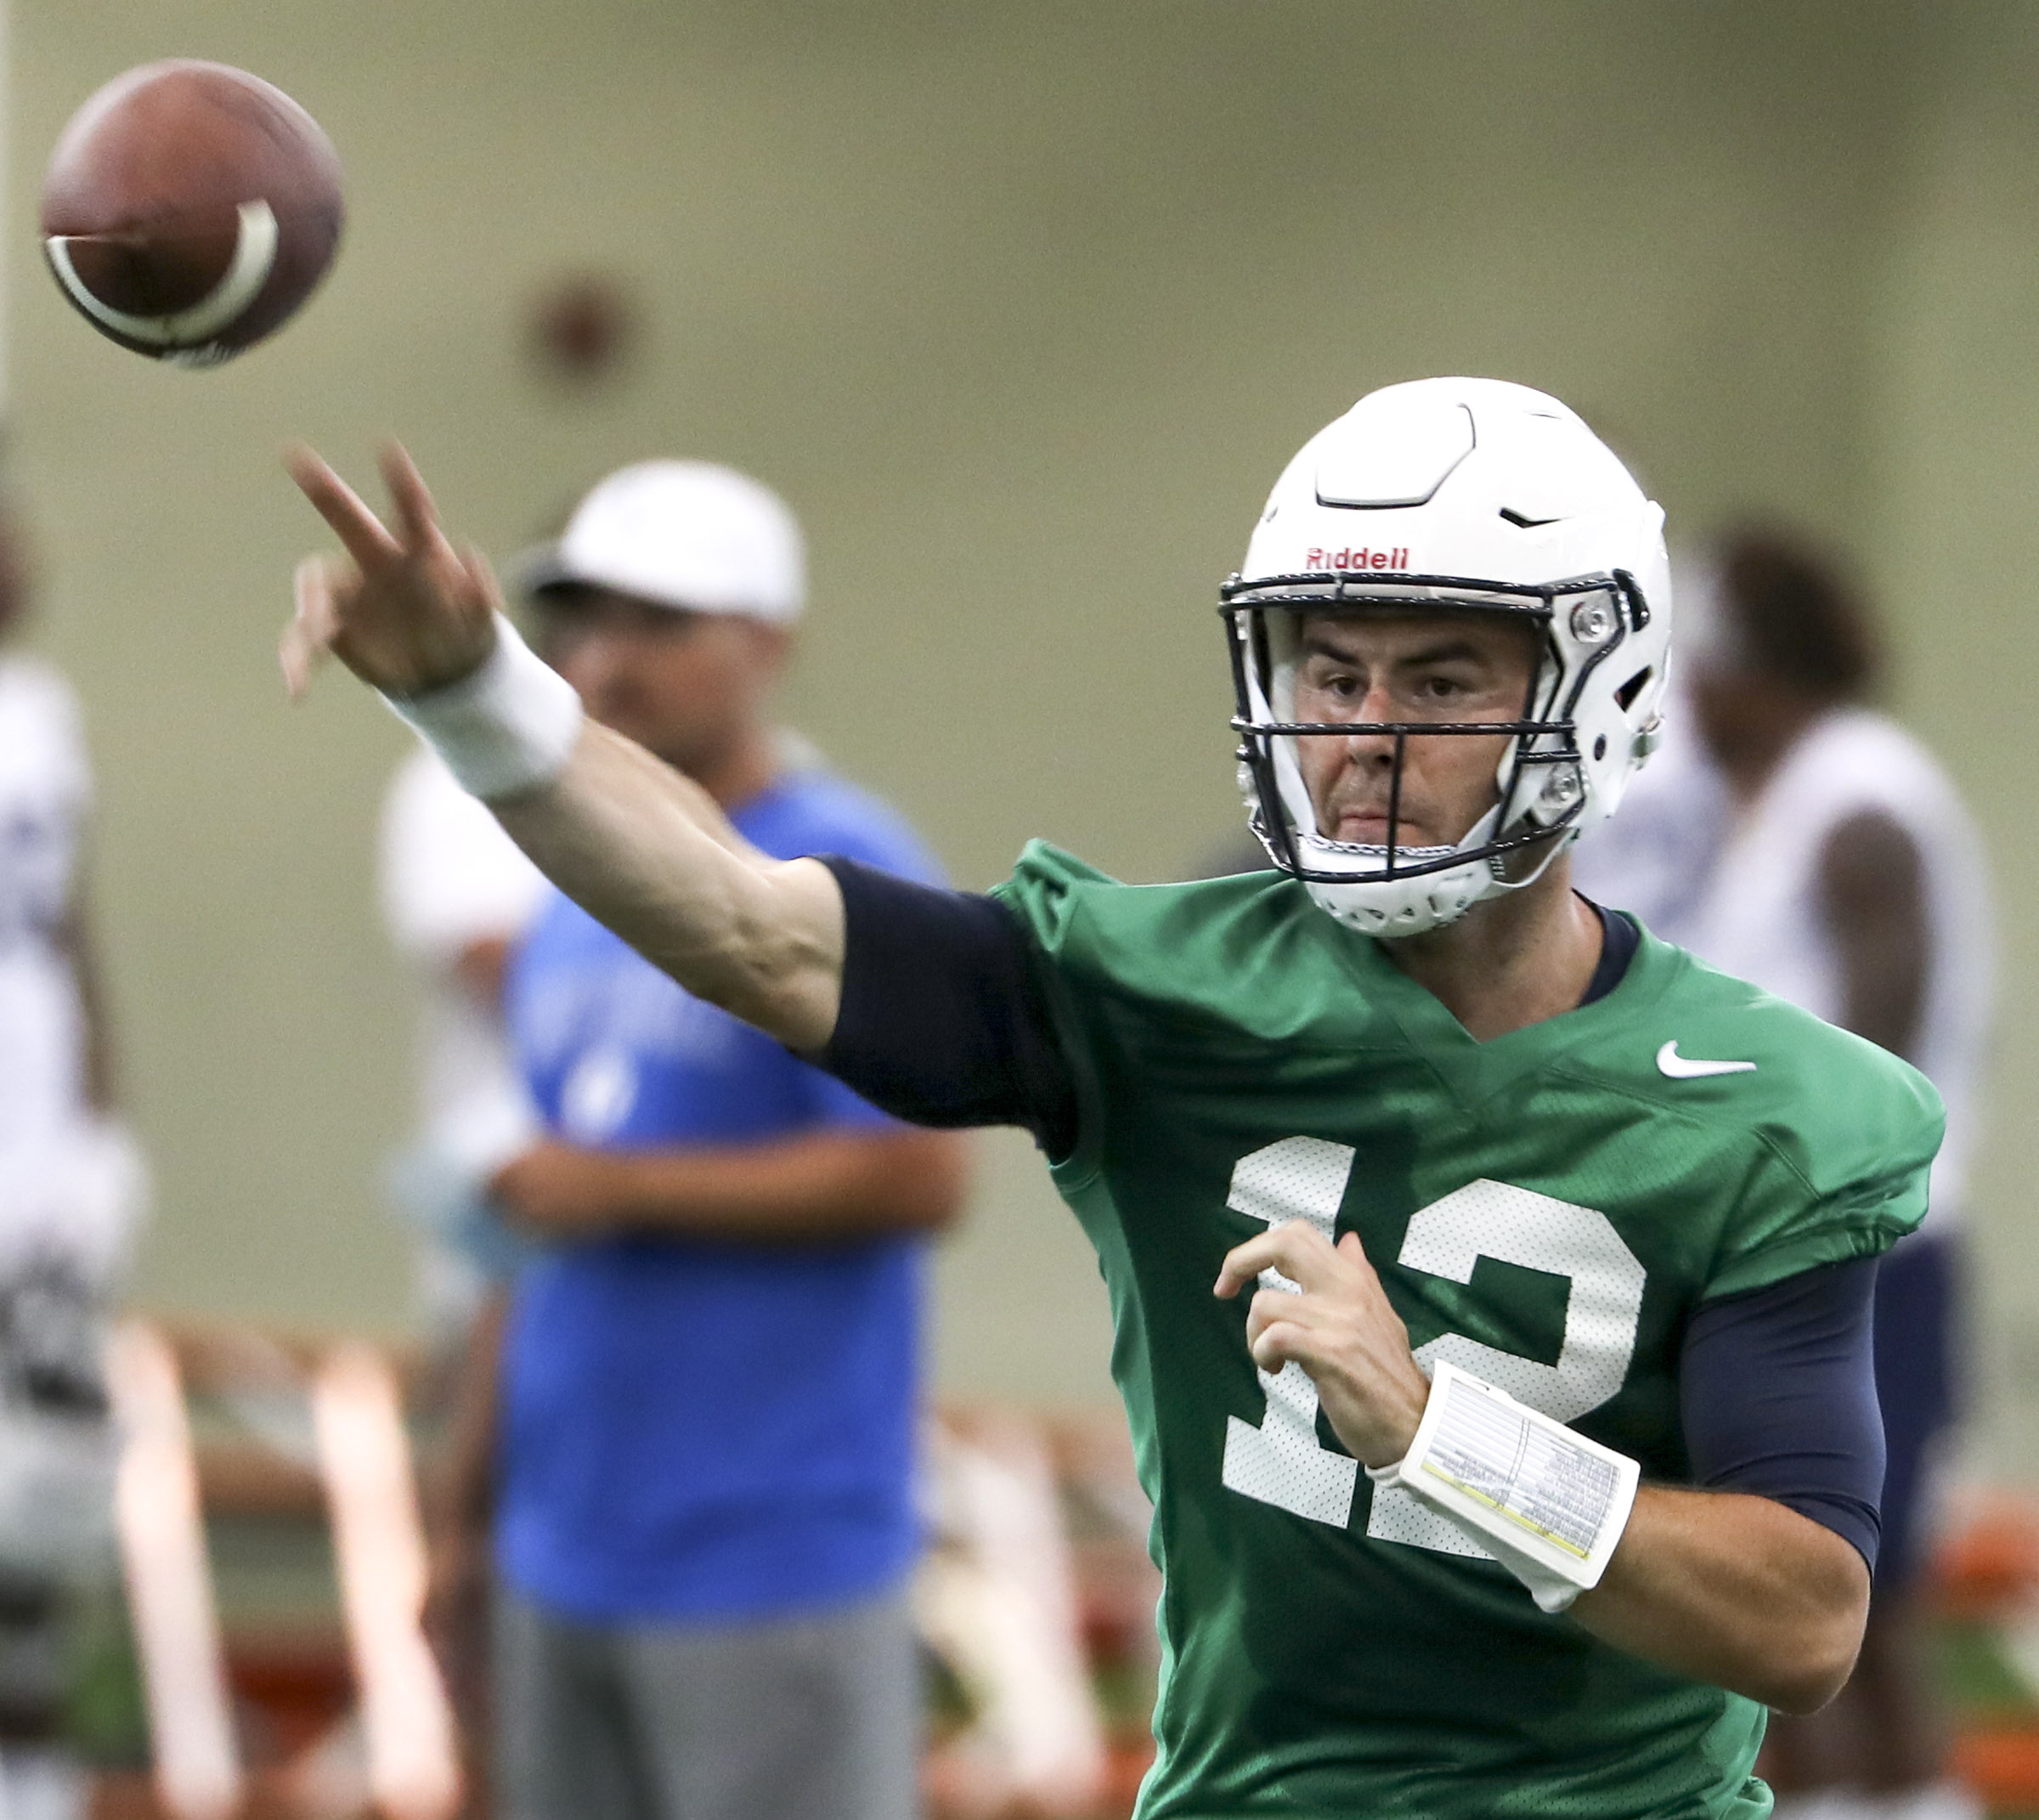 Dick Harmon: You have to feel for Tanner Mangum and the spot he's in as BYU picks a starting QB